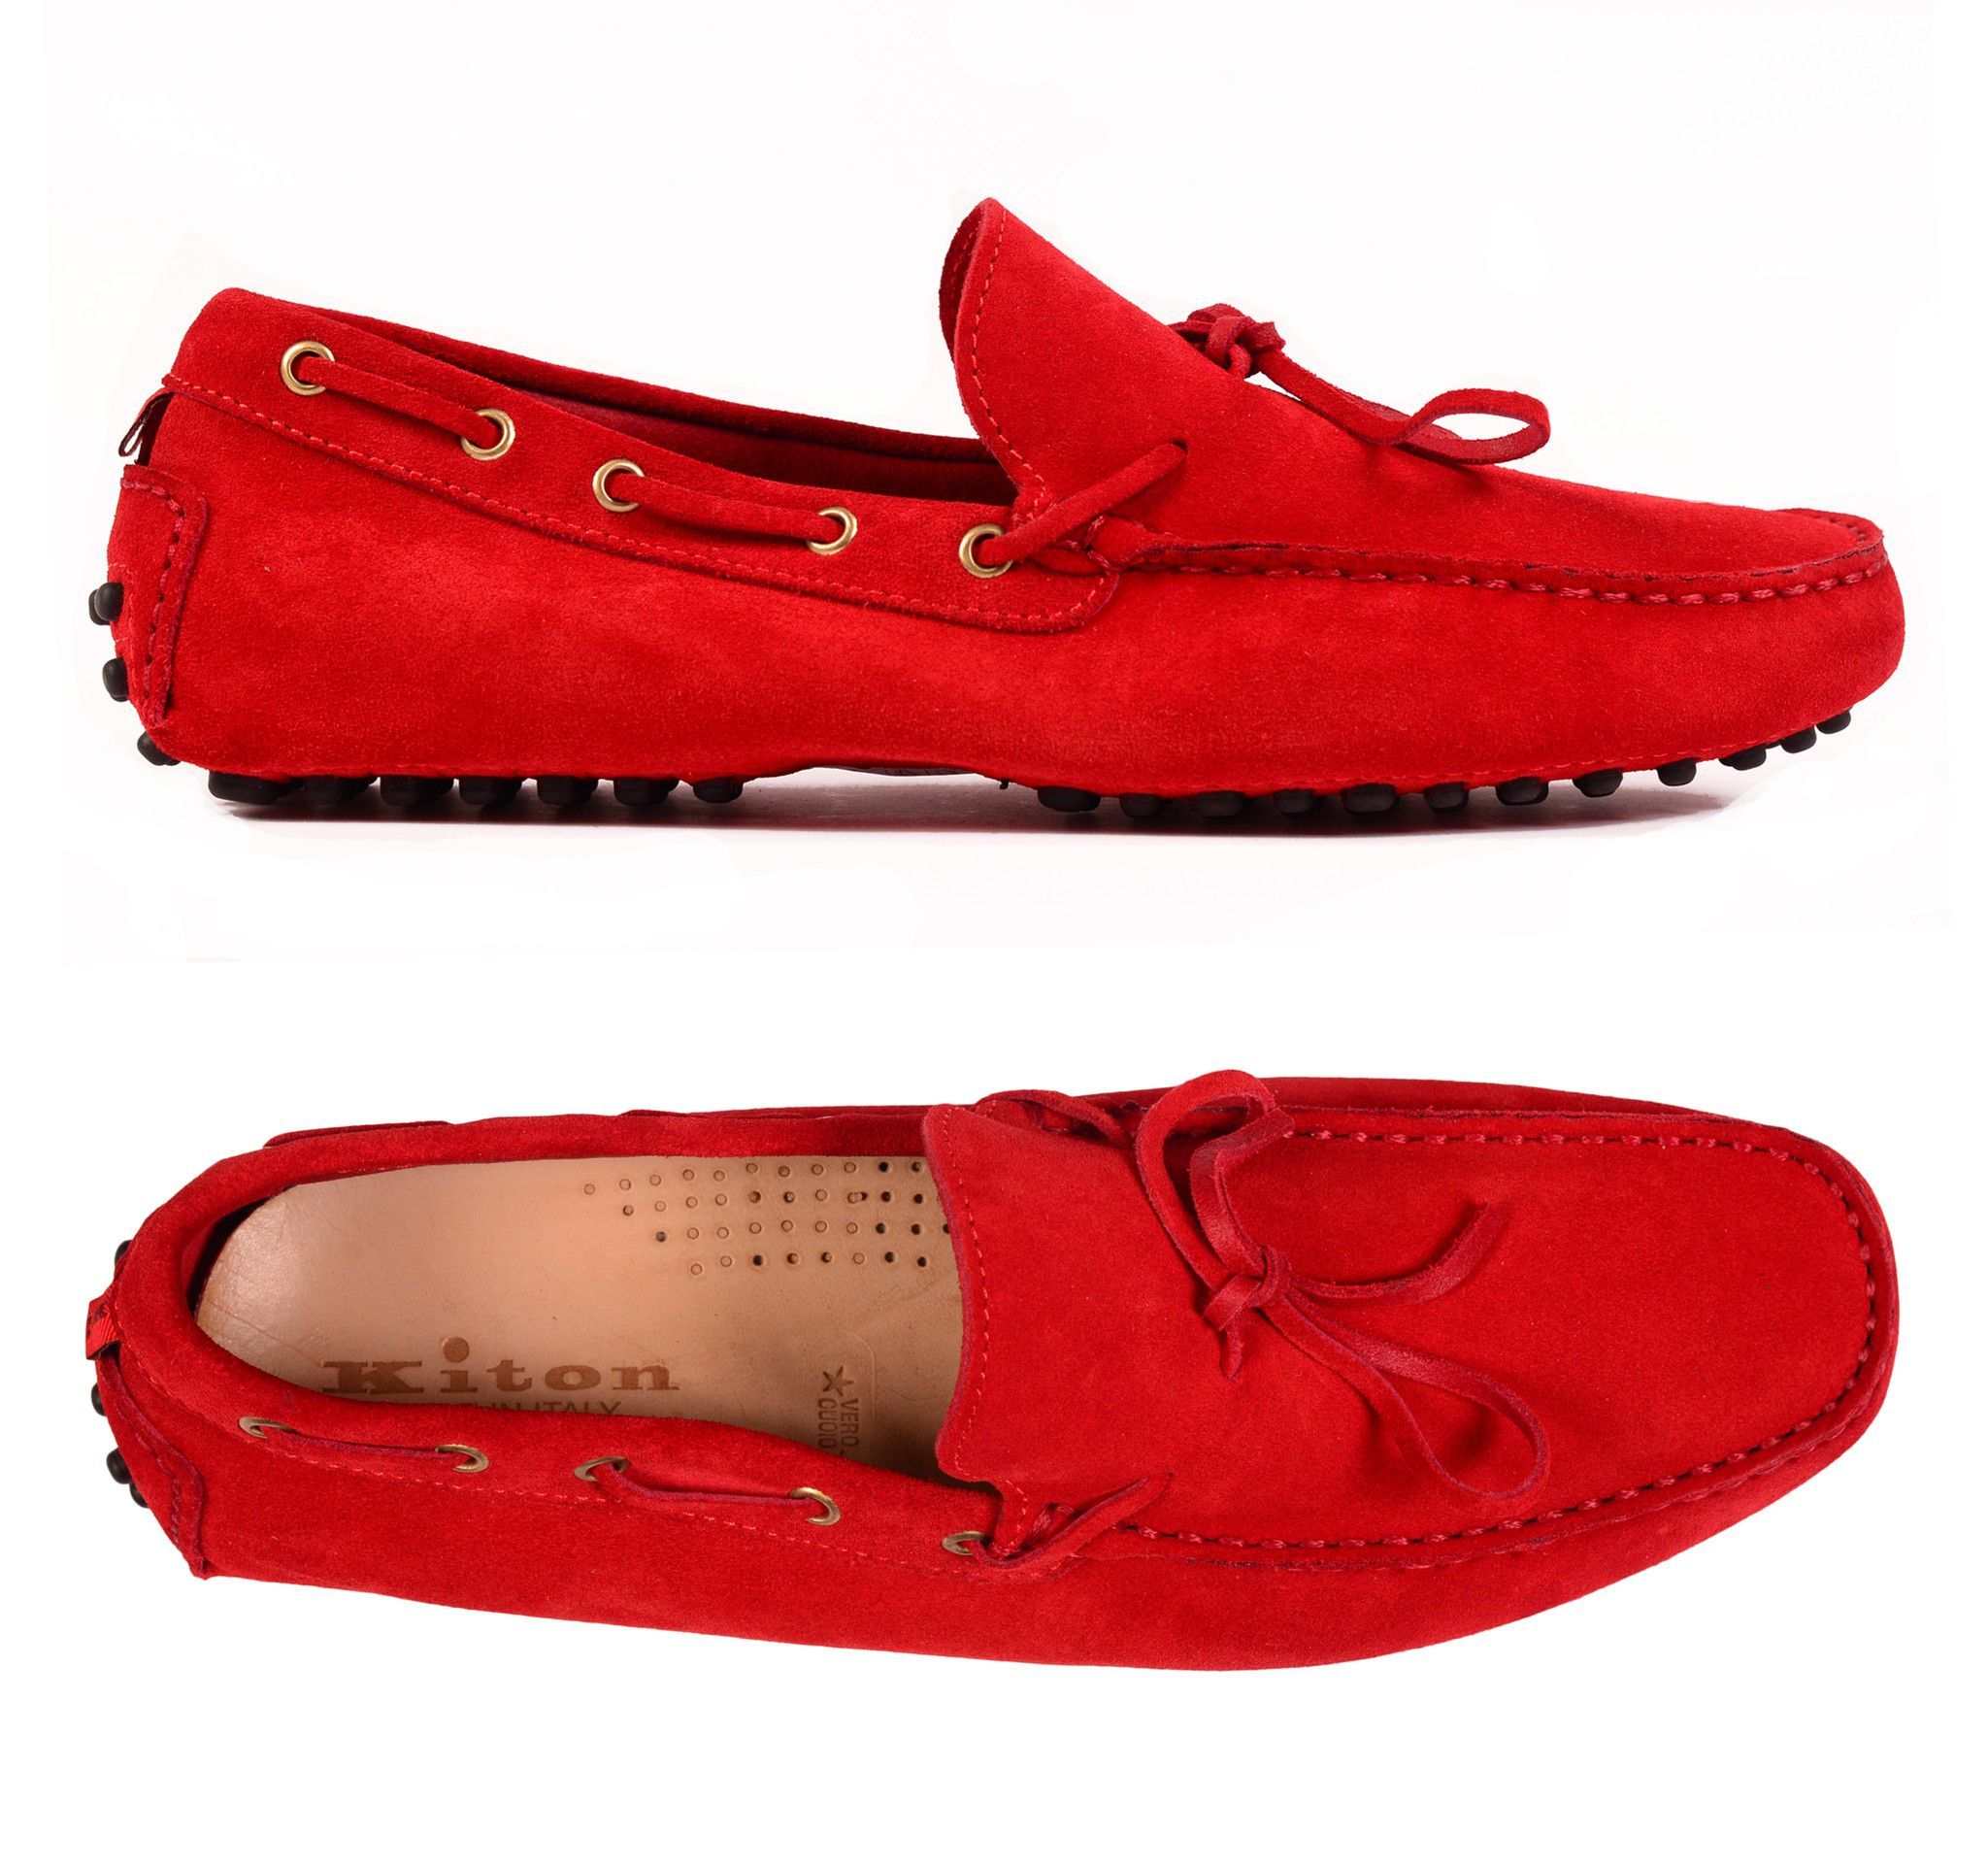 KITON NAPOLI Ferrari Red Suede Loafers Driving Car Shoes Moccasins 9 NEW US  10